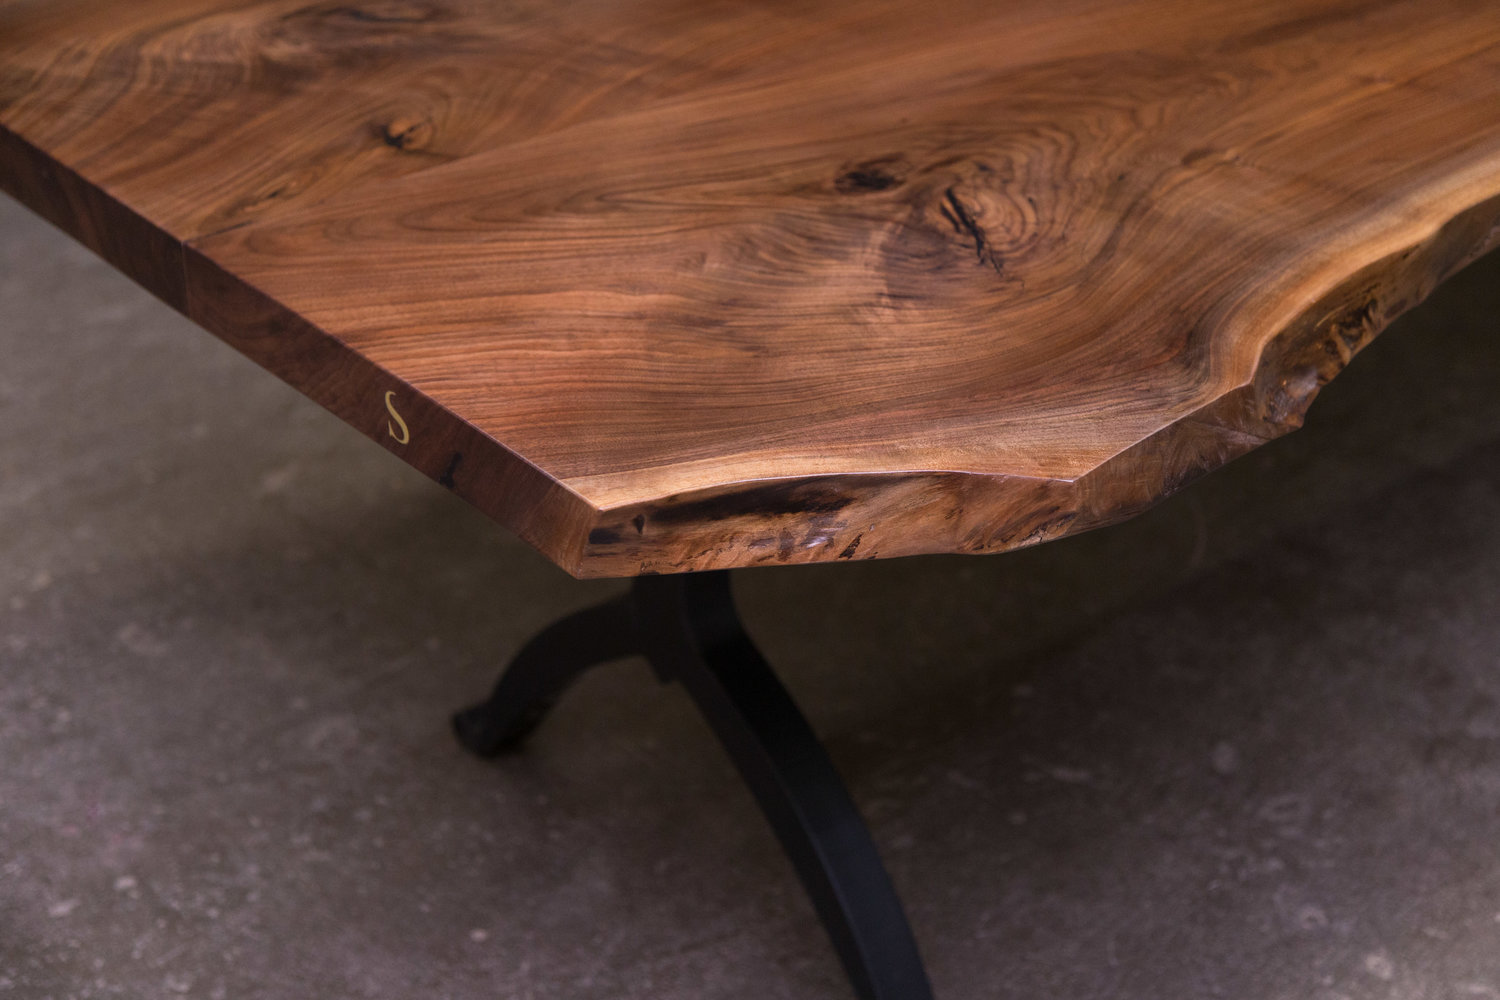 Live Edge Tables with Solid Wood Walnut, Maple and Oak ...